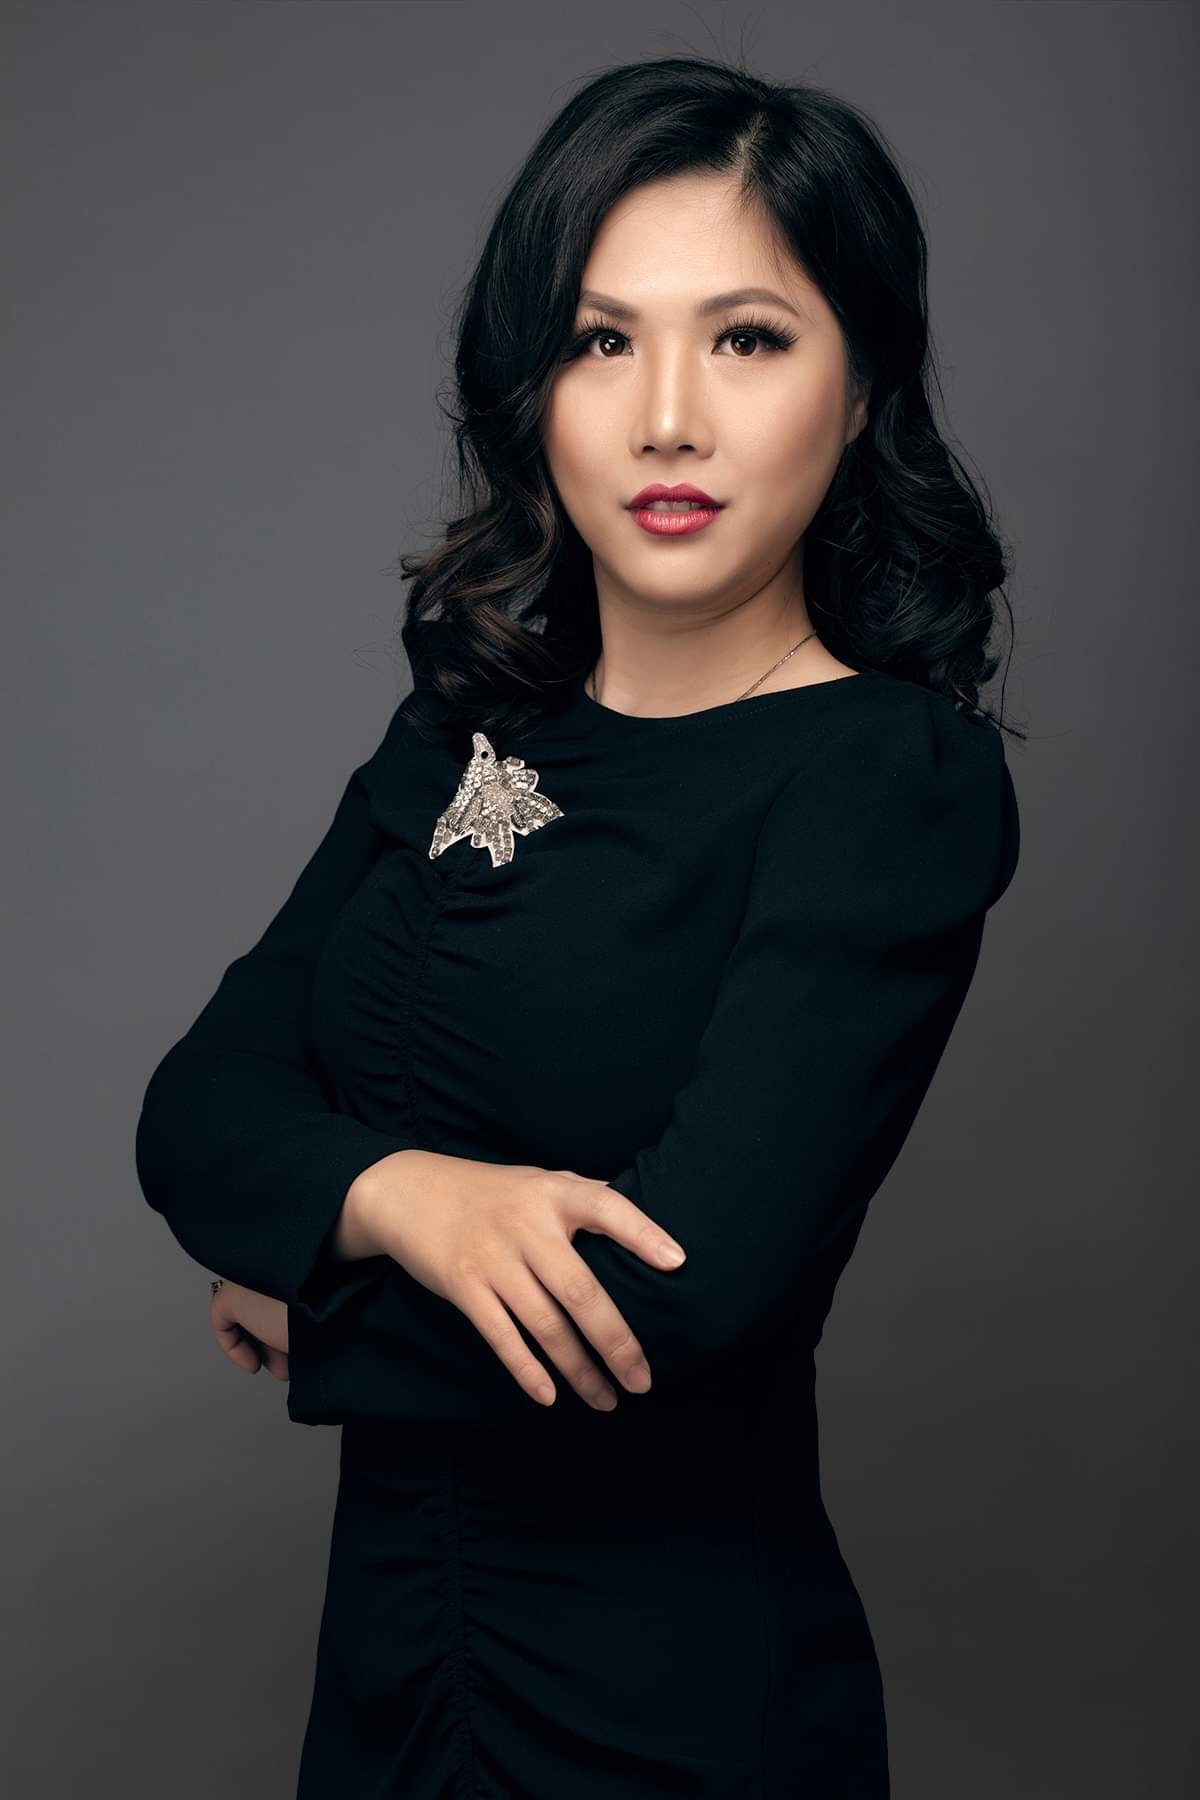 Kathy Duong Lash Director  -  Our lady of lash is extremely professional, talented and always dressed to impress. Her work is meticulous, edgy, precise and always on trend. You will love her work, every time you open your eyes.